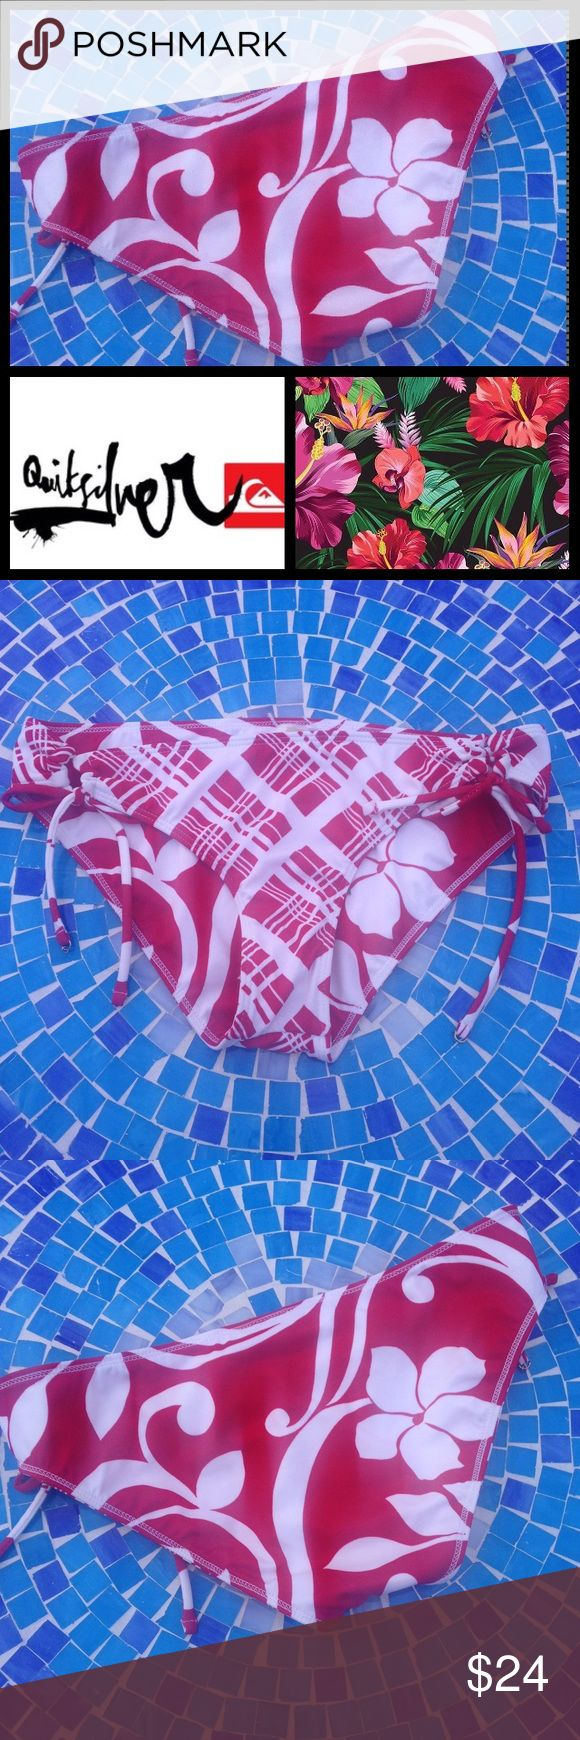 NEW Quicksilver Raisin reversible Sweet Pea bottom Absolutely gorgeous & ultra-versatile Raisons Swim bottoms reverse to accommodate your personal style!  1 side features a tropical Hawaiian 🌺 print & the other, a plaid, striped print to easily pair with any neutral top!  Size is Large & bottoms are brand new, never worn with tags & hygienic sticker attached!  No trades please.  Retail at $44! Raisins Swim Bikinis